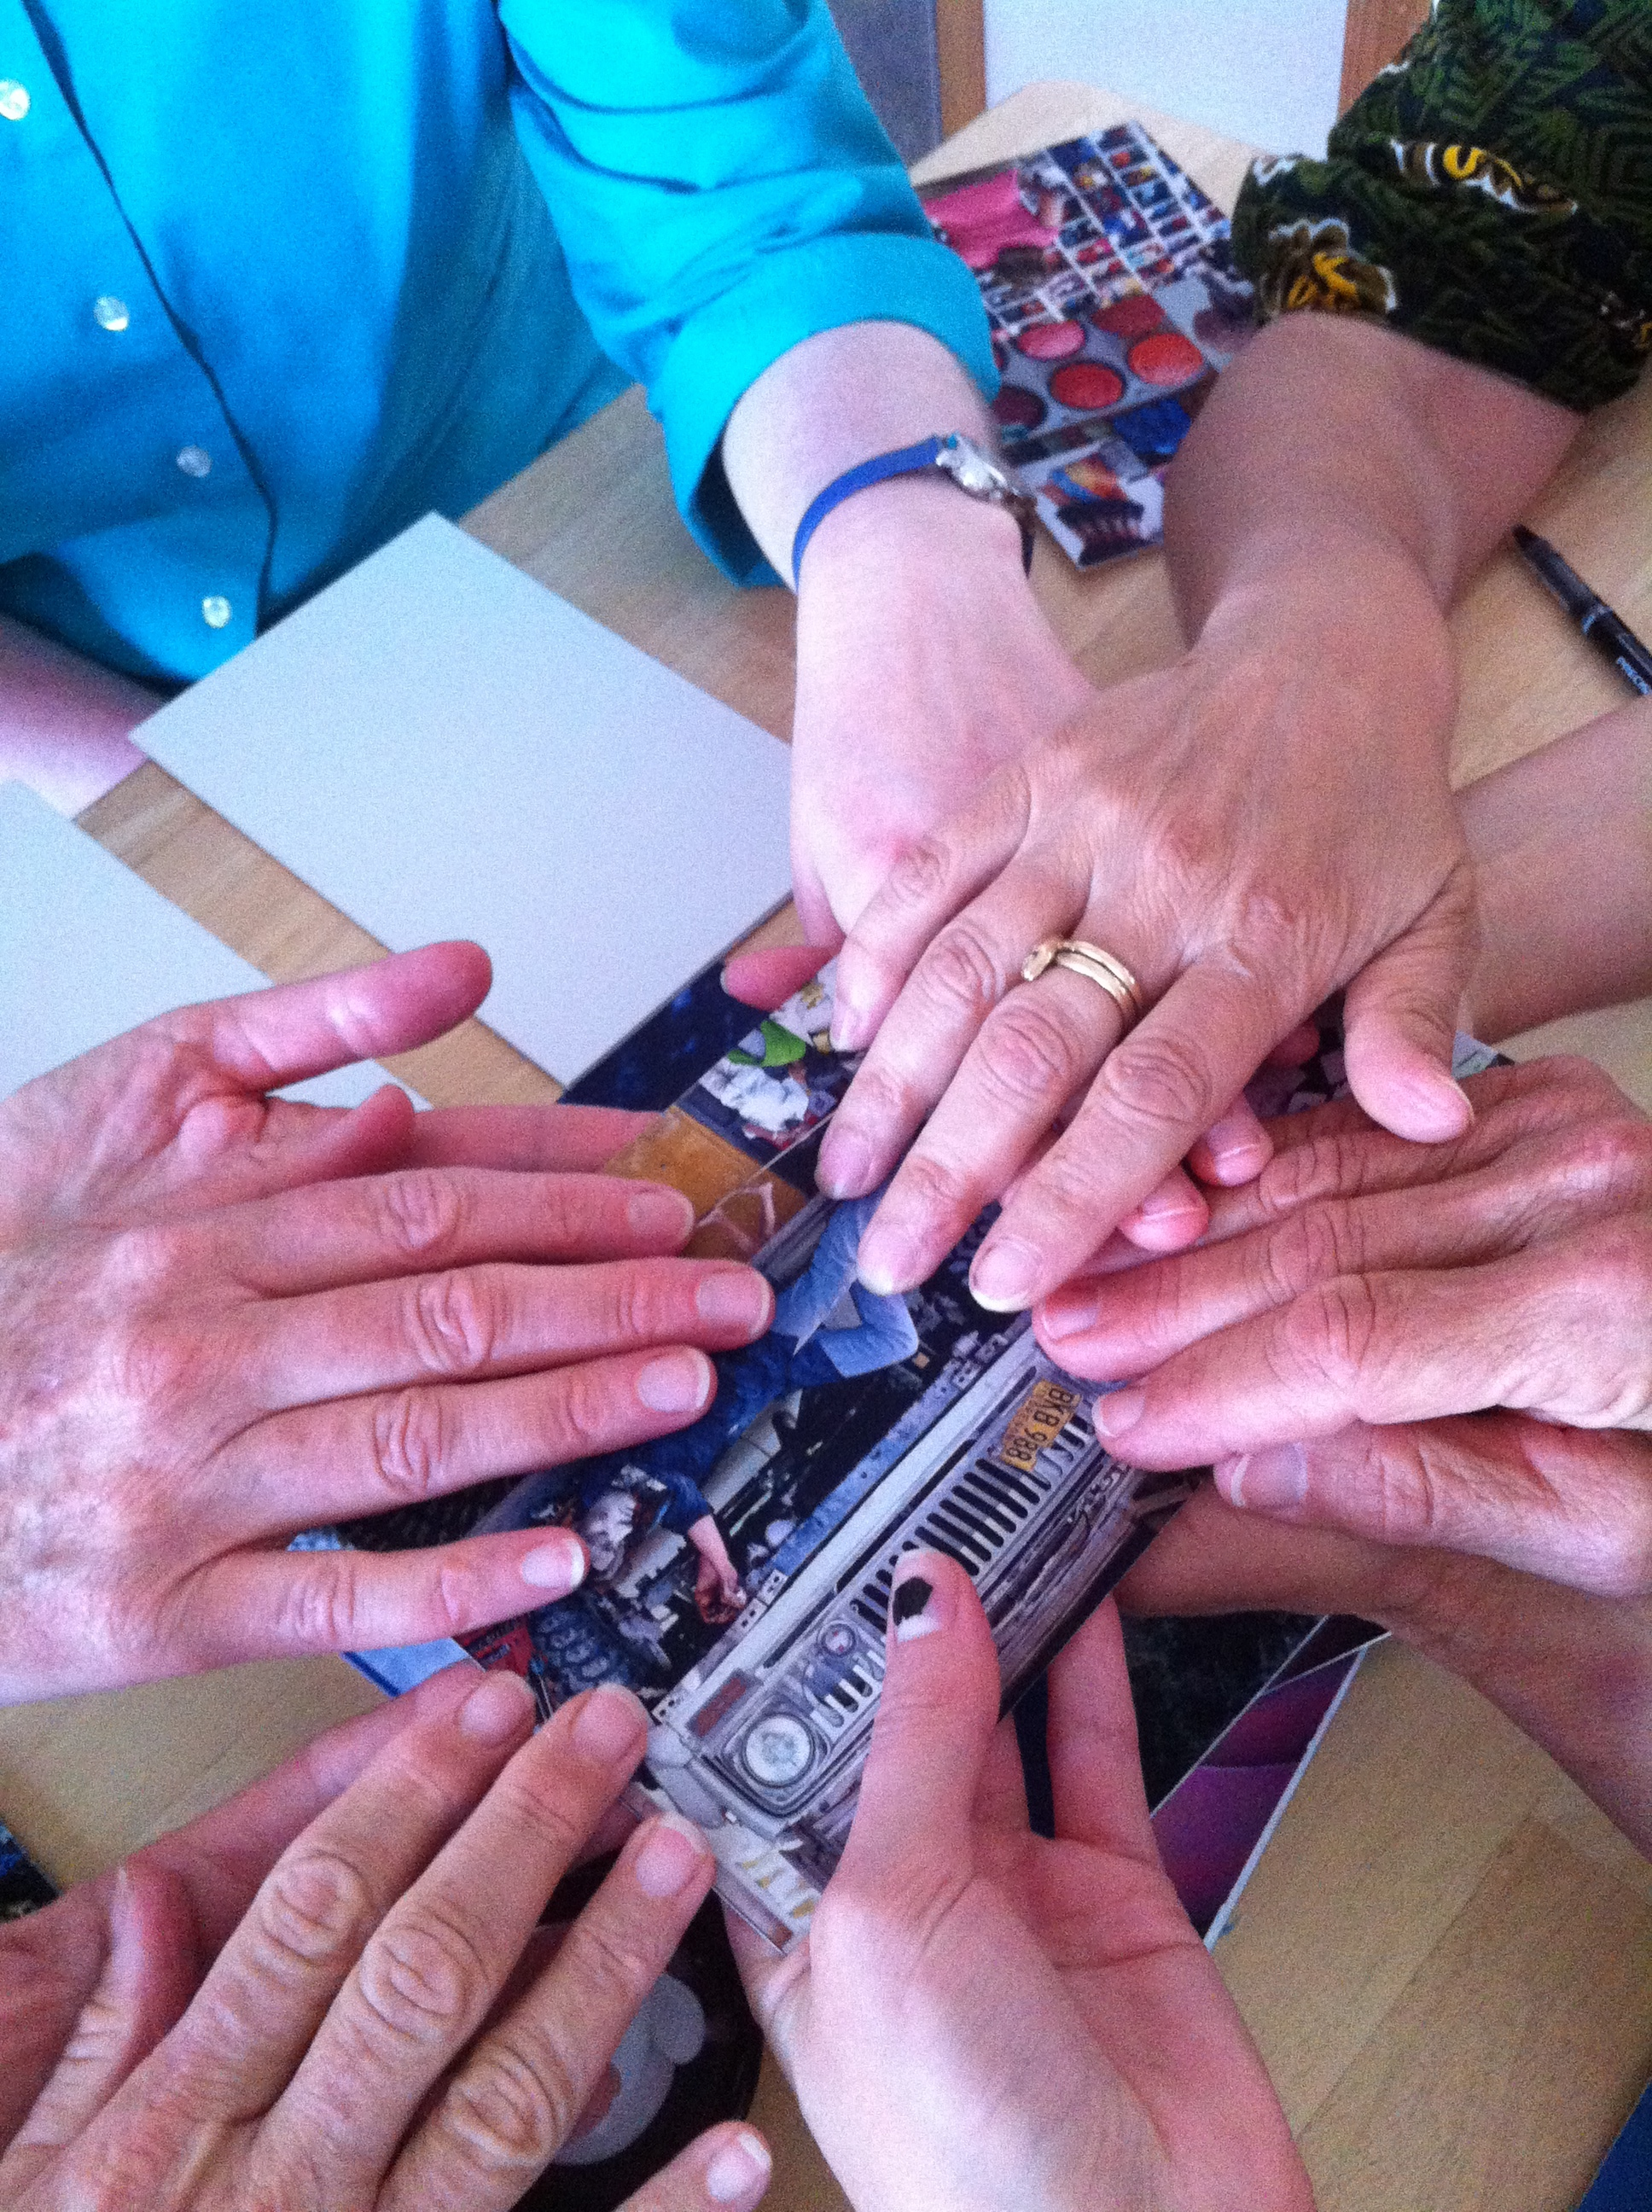 After the card speaks, the group holds hands with gratitude.